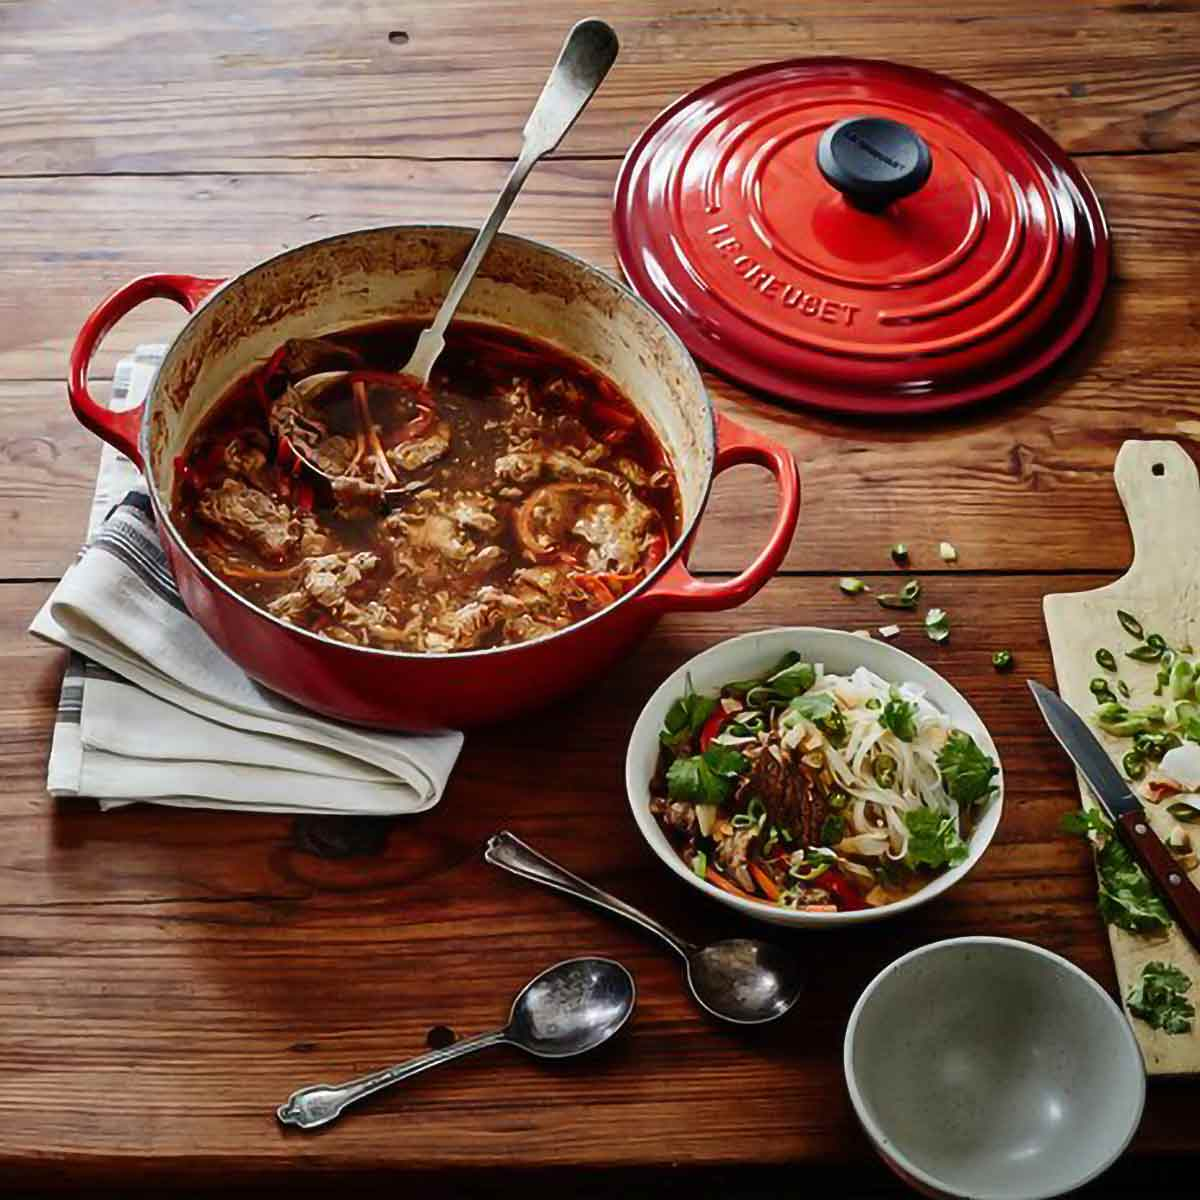 Le Creuset Sauteuse with Stew